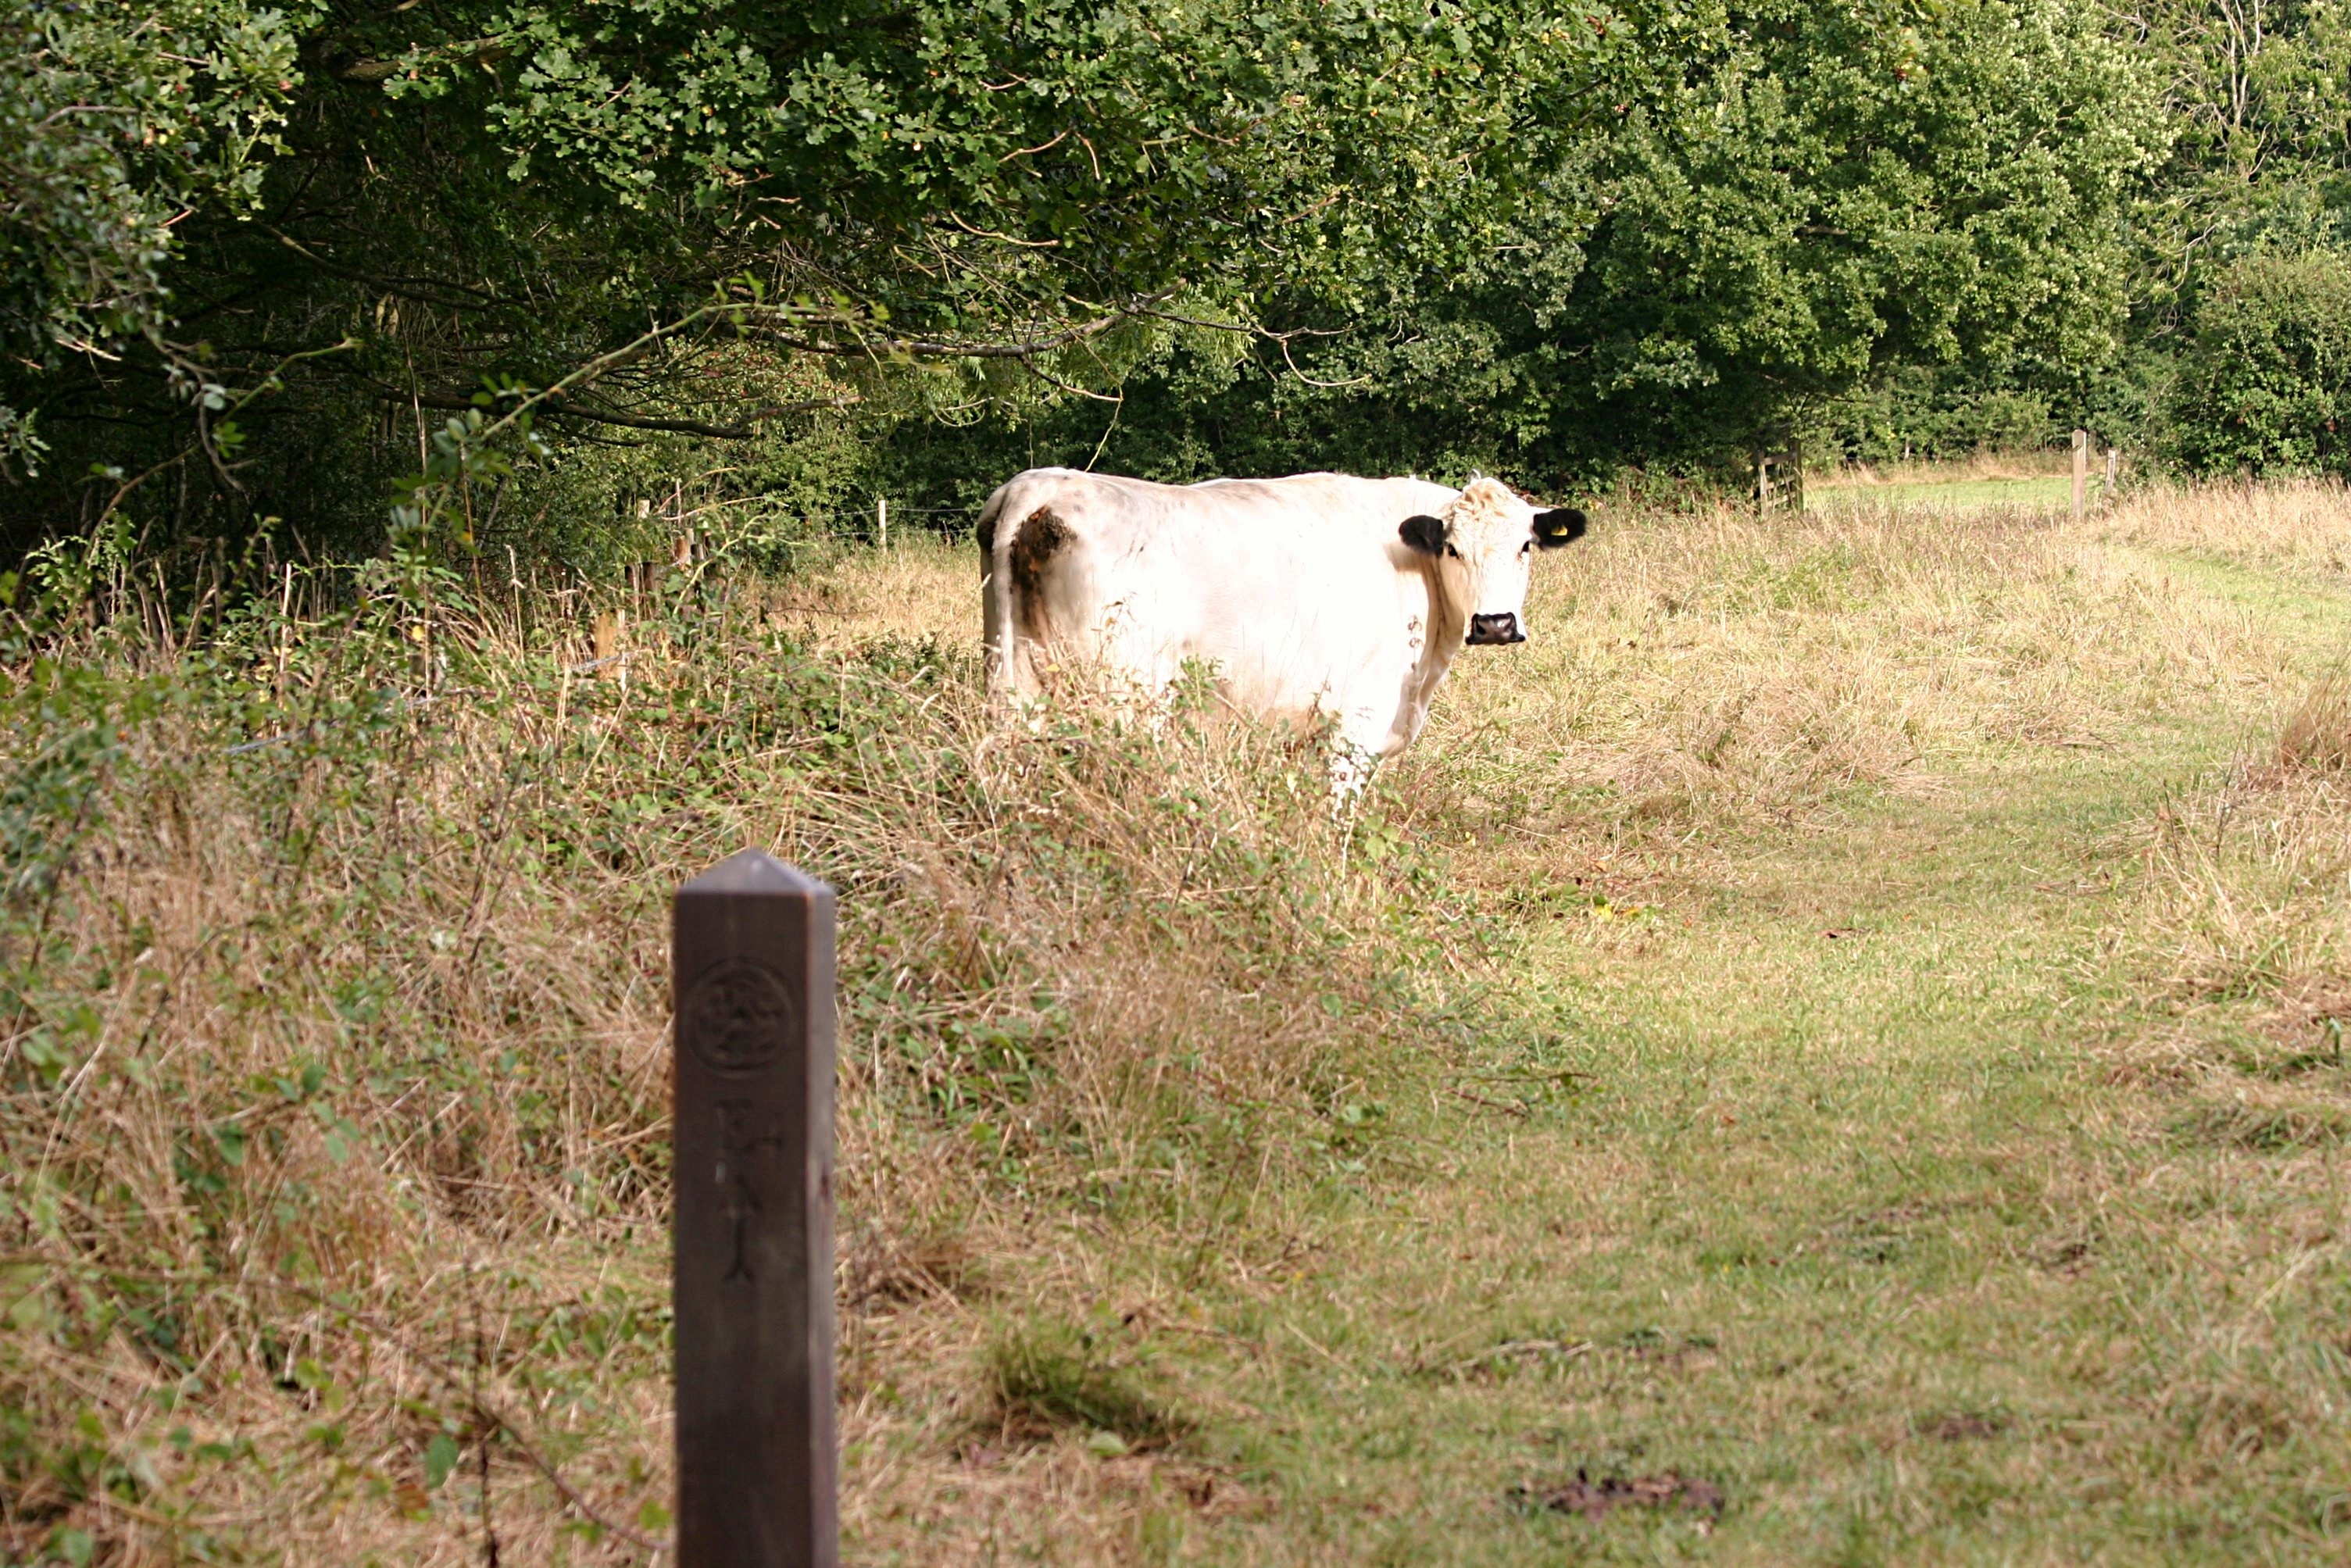 Meeting the cows on a weekend walk by Julie Kemp from Hasketon